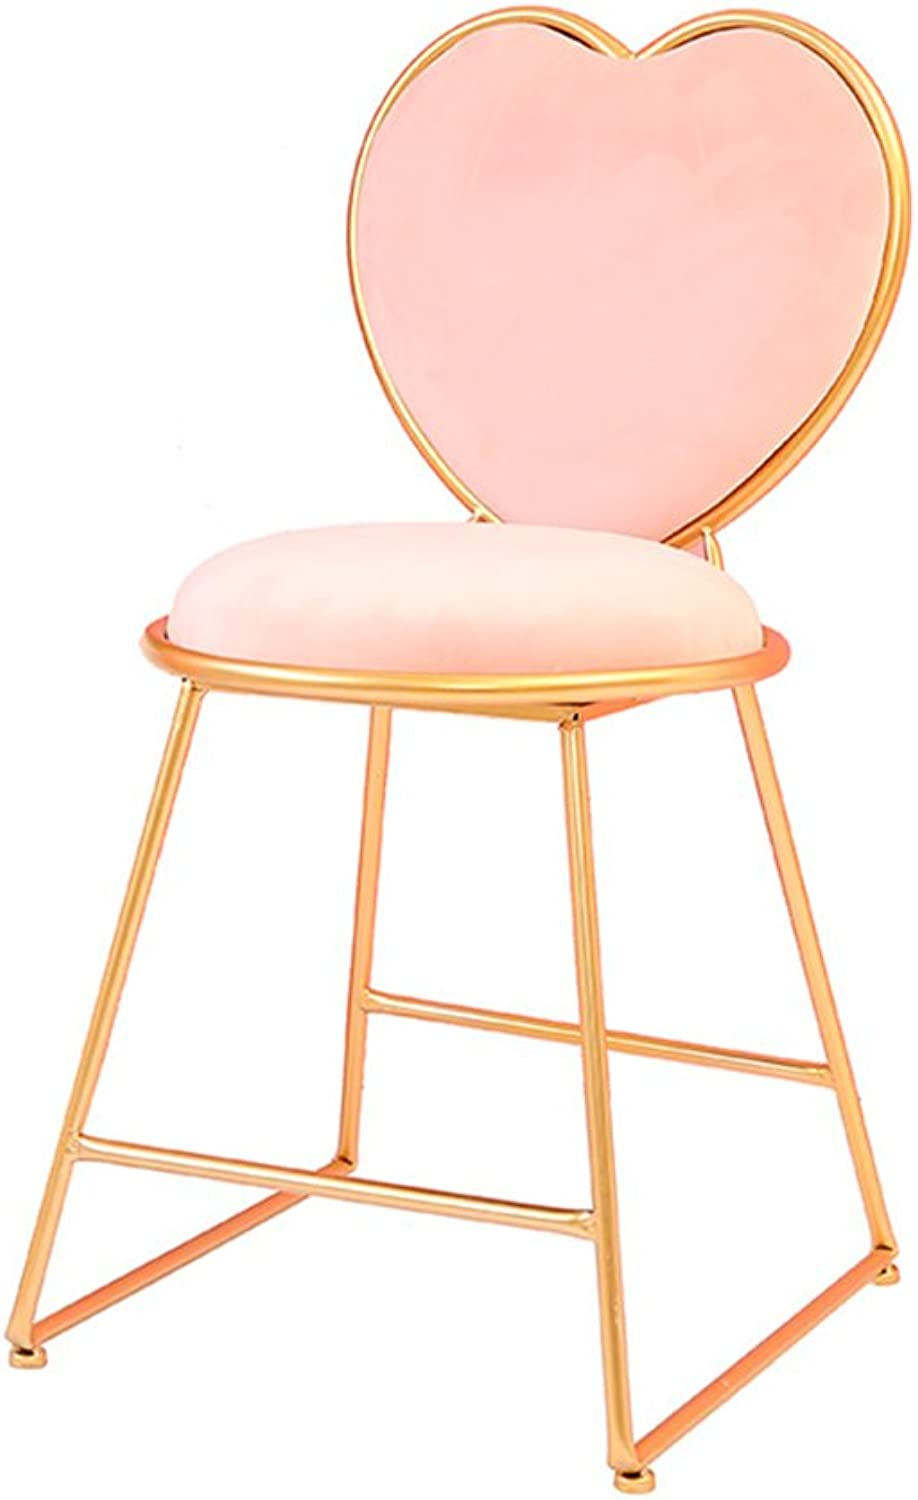 YM Creative Bar Stool, Dressing Table Chair Nail Bench Cafe Restaurant Wrought Iron Armchair Heart Shaped Decorative Chair 40  40  80CM